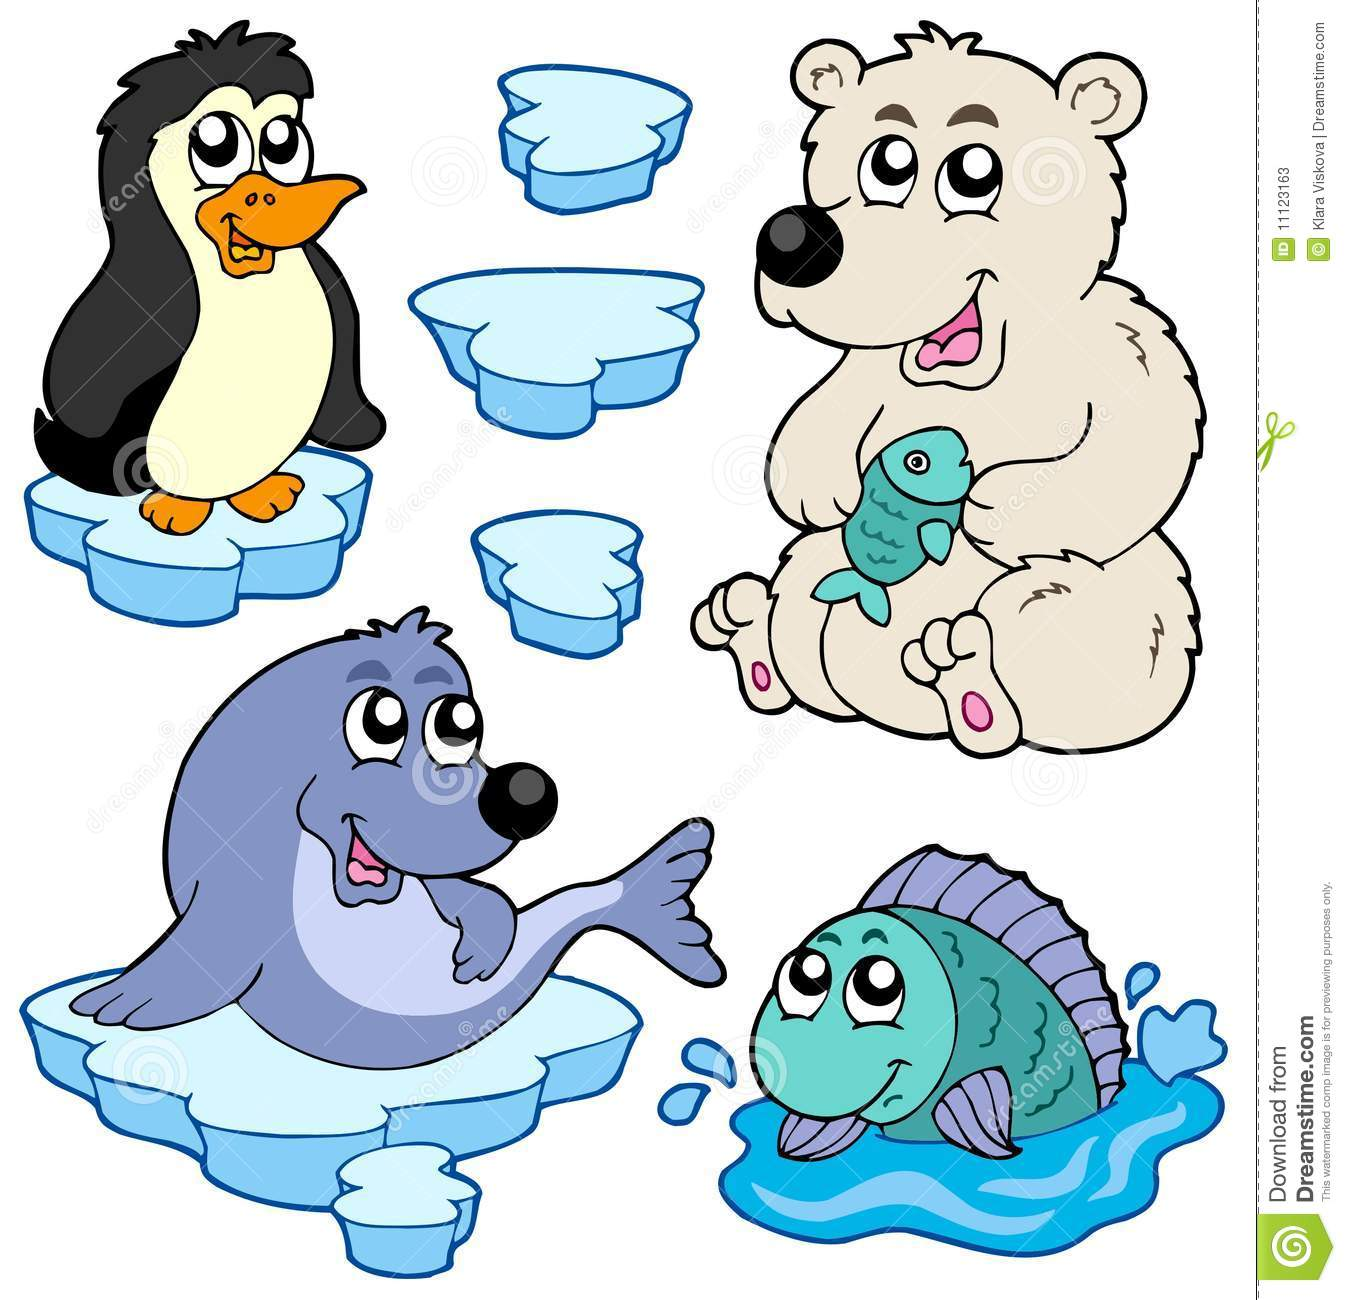 Displaying Images For - Arctic Animals Clipart...